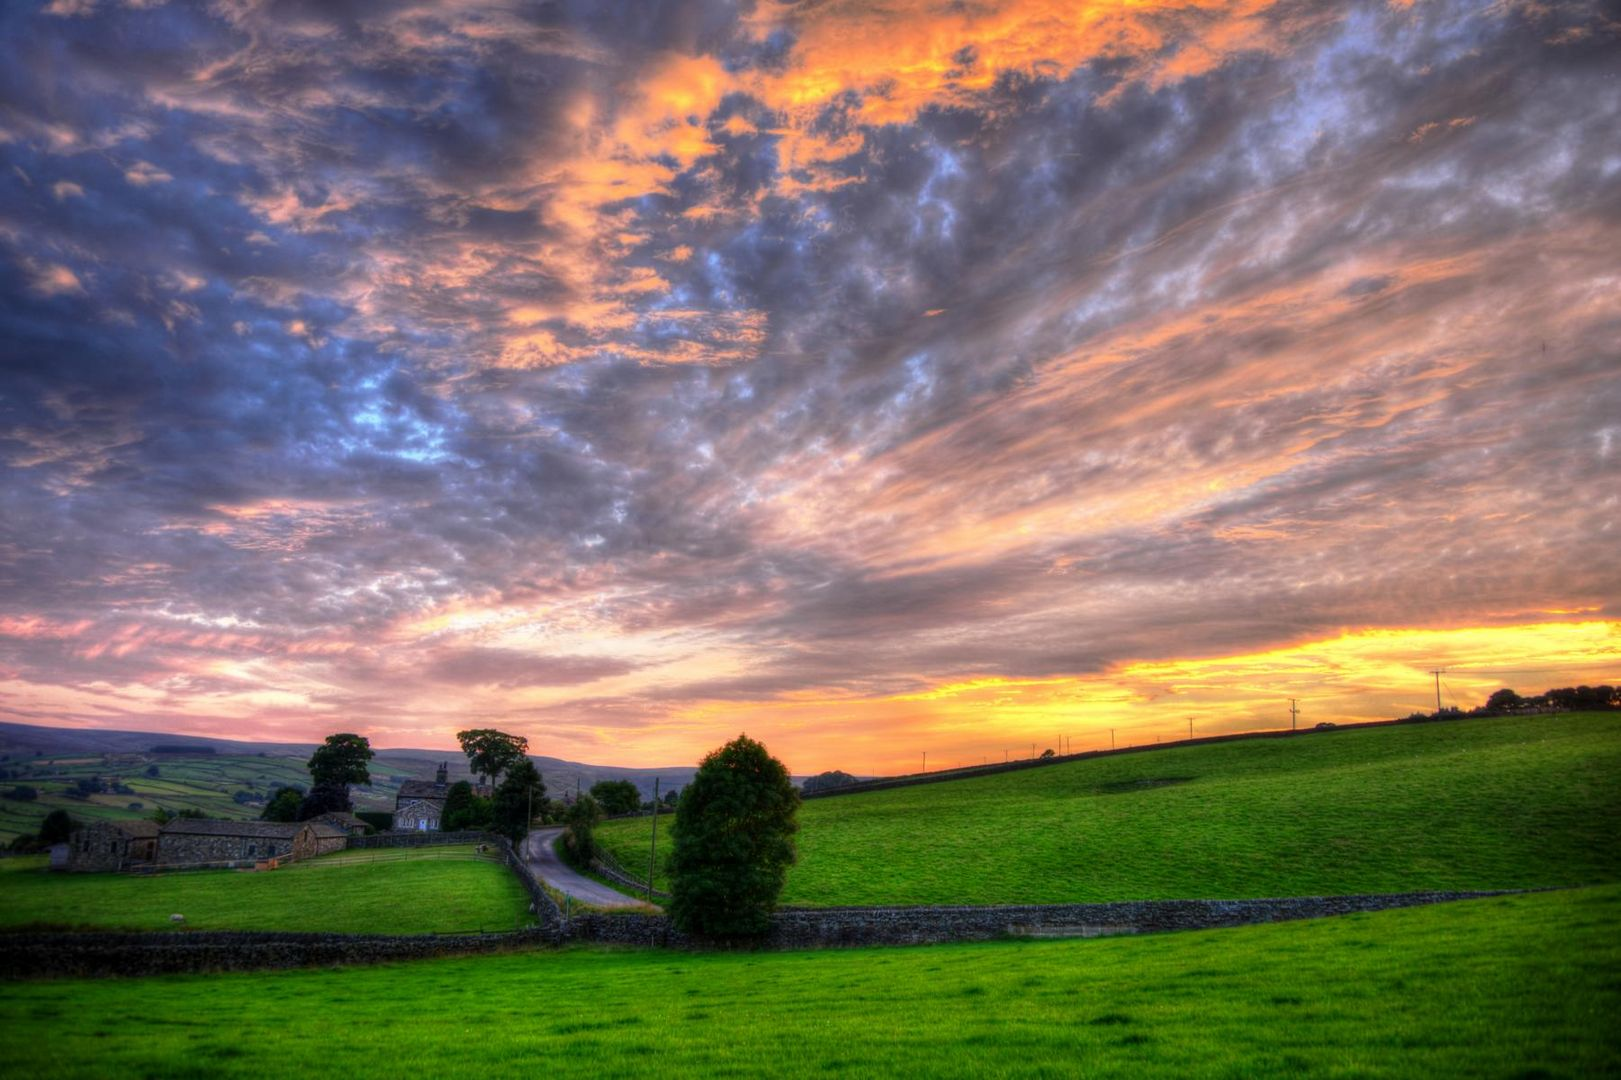 Yorkshire Sunset - nr Keighley, West Yorkshire